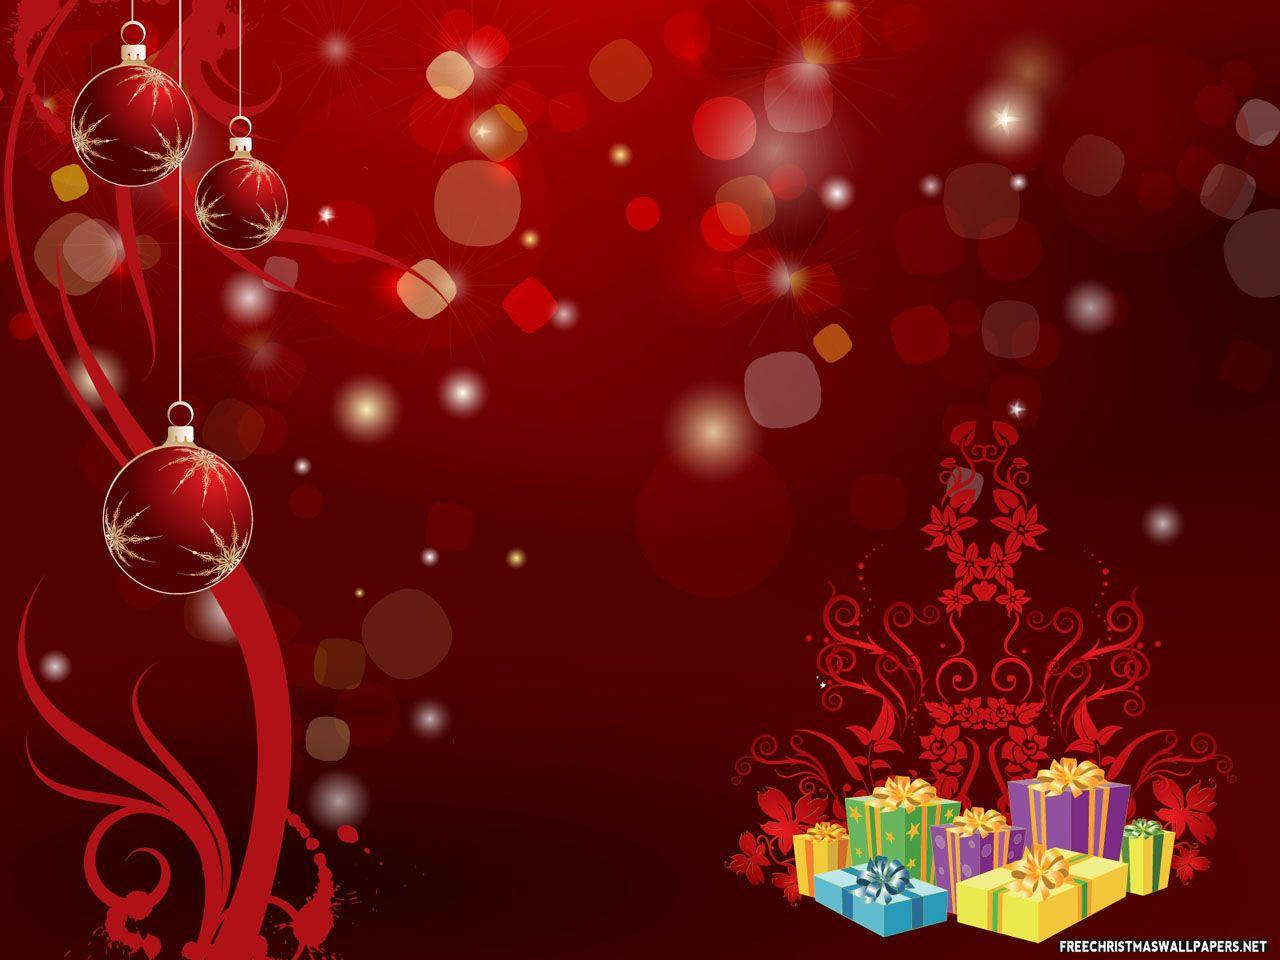 Christmas theme wallpapers wallpaper cave for Holiday themed facebook cover photos